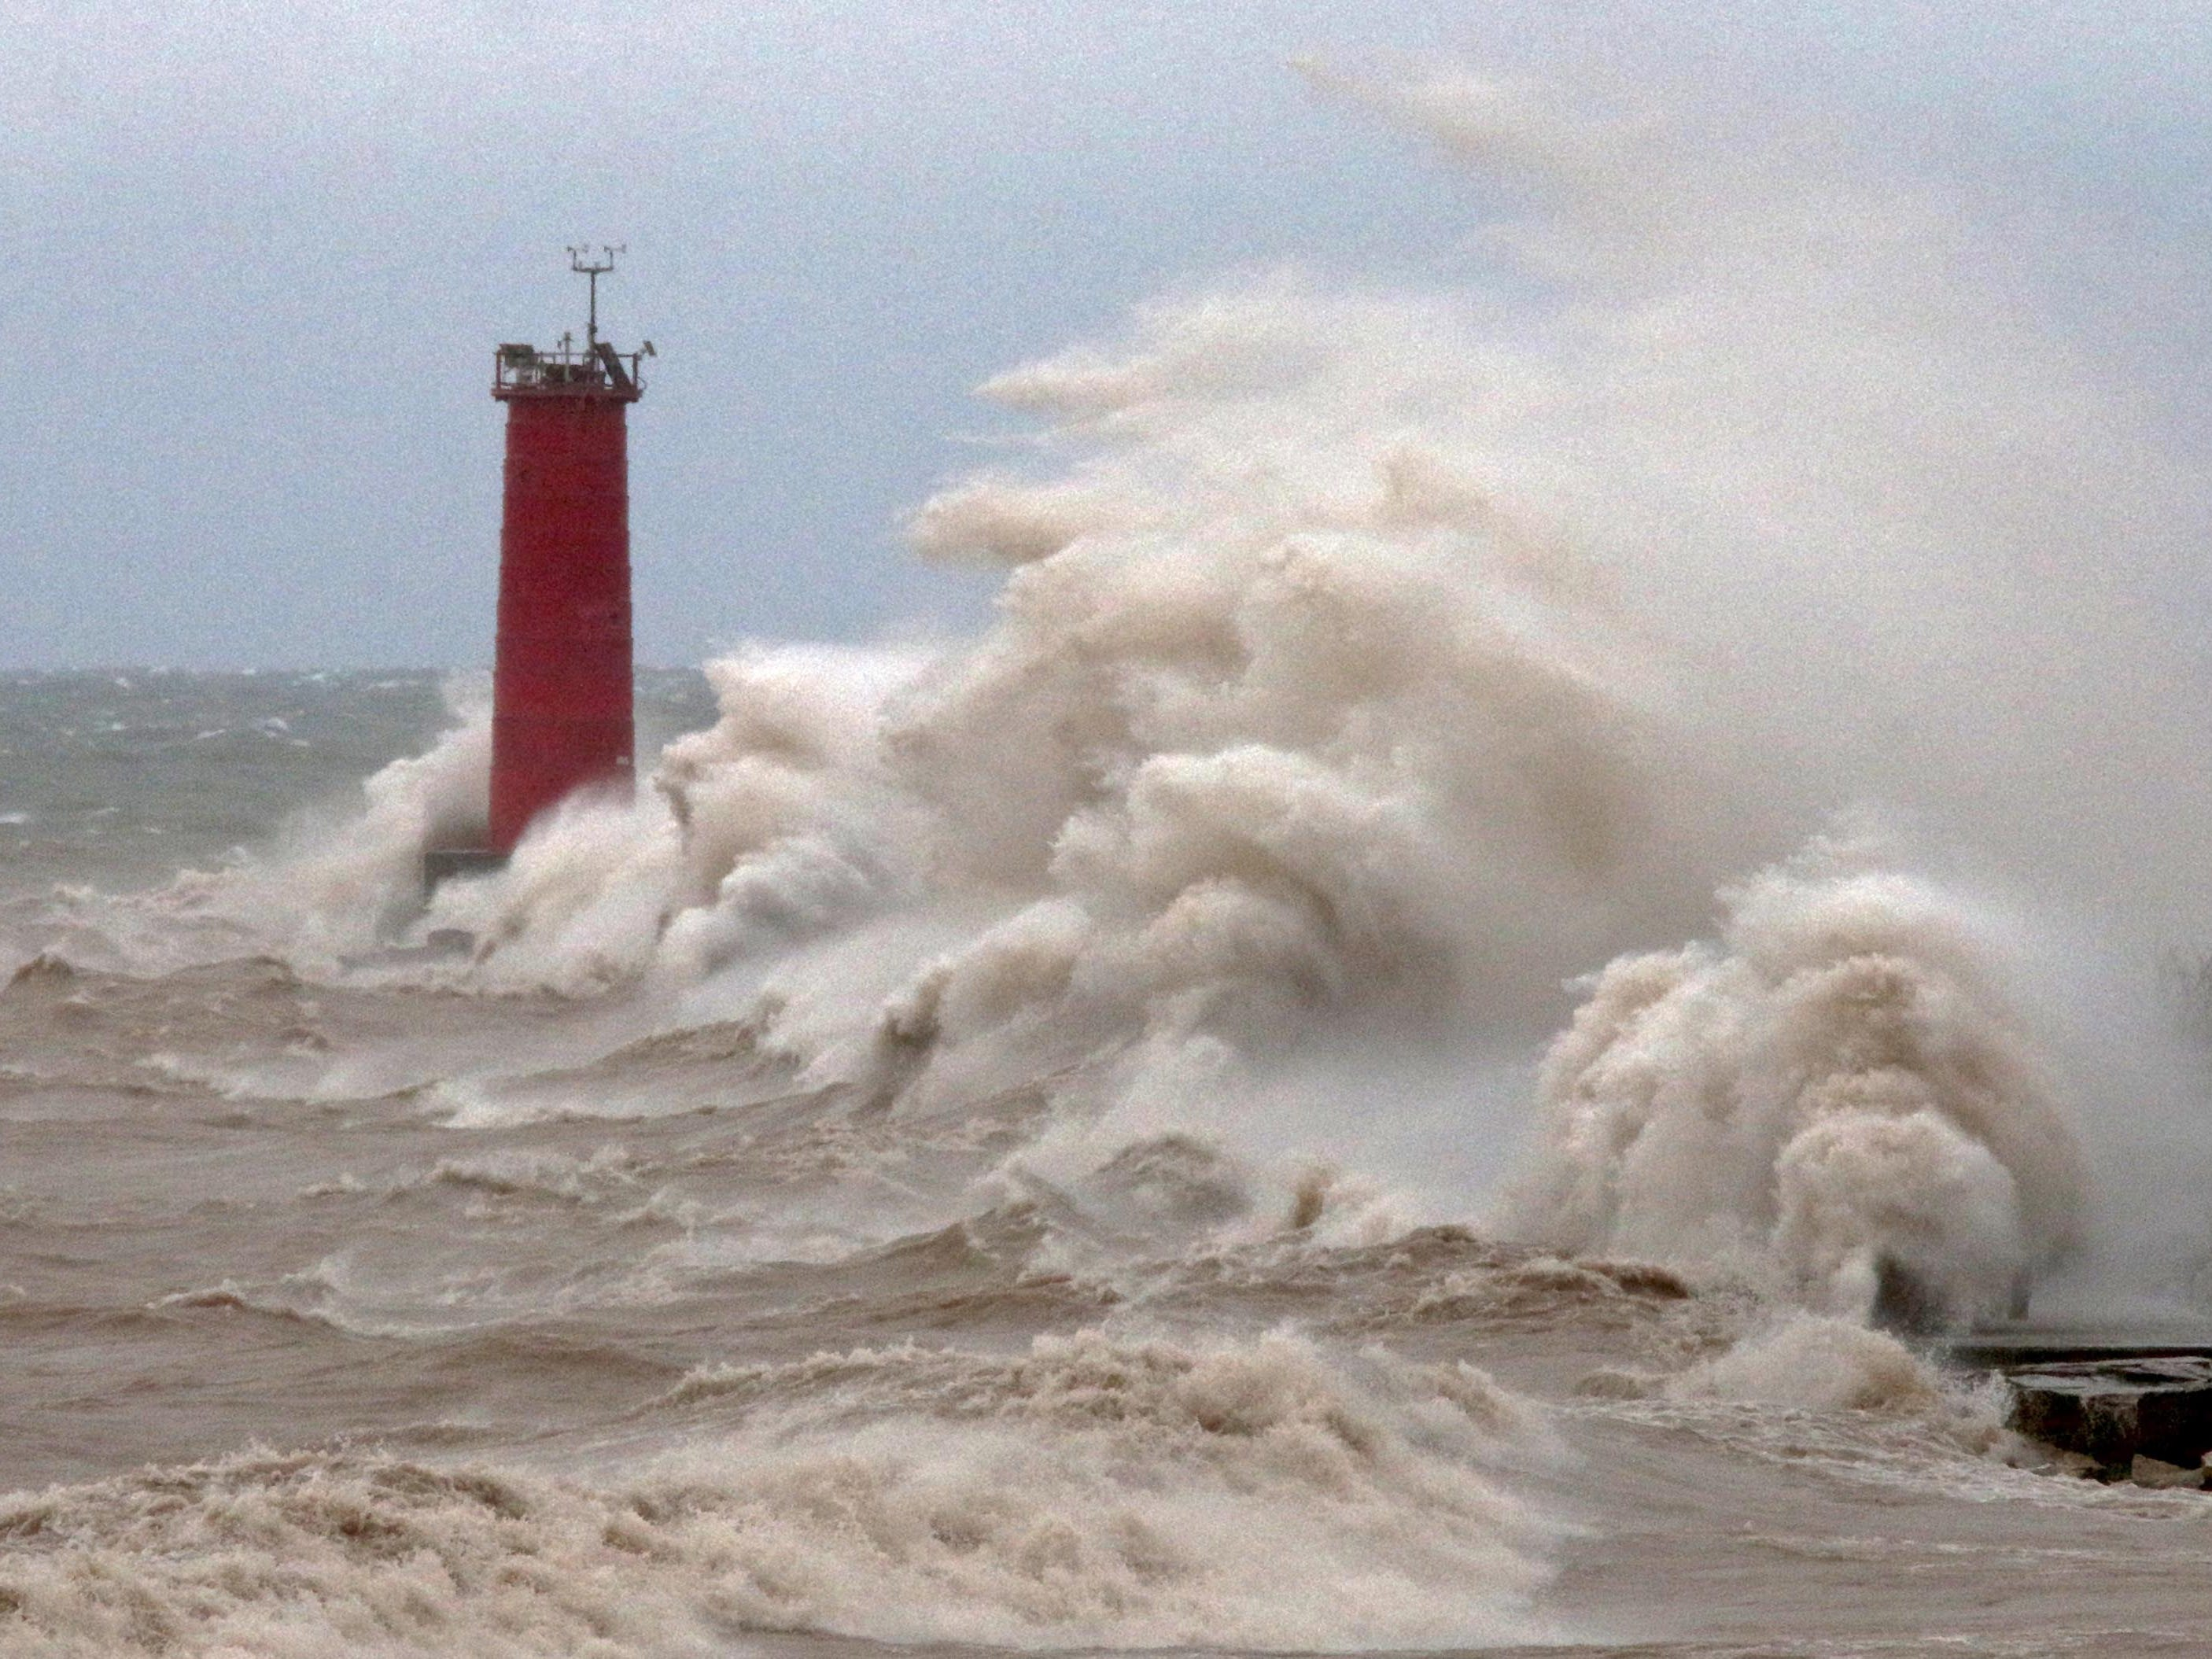 Strong winds whipped waves against the Sheboygan north pier breakwater, on April 14, 2018, in Sheboygan, Wis. According to the National Weather Service, 52 mph winds were recorded at Sheboygan Memorial Airport.  FILE PHOTO